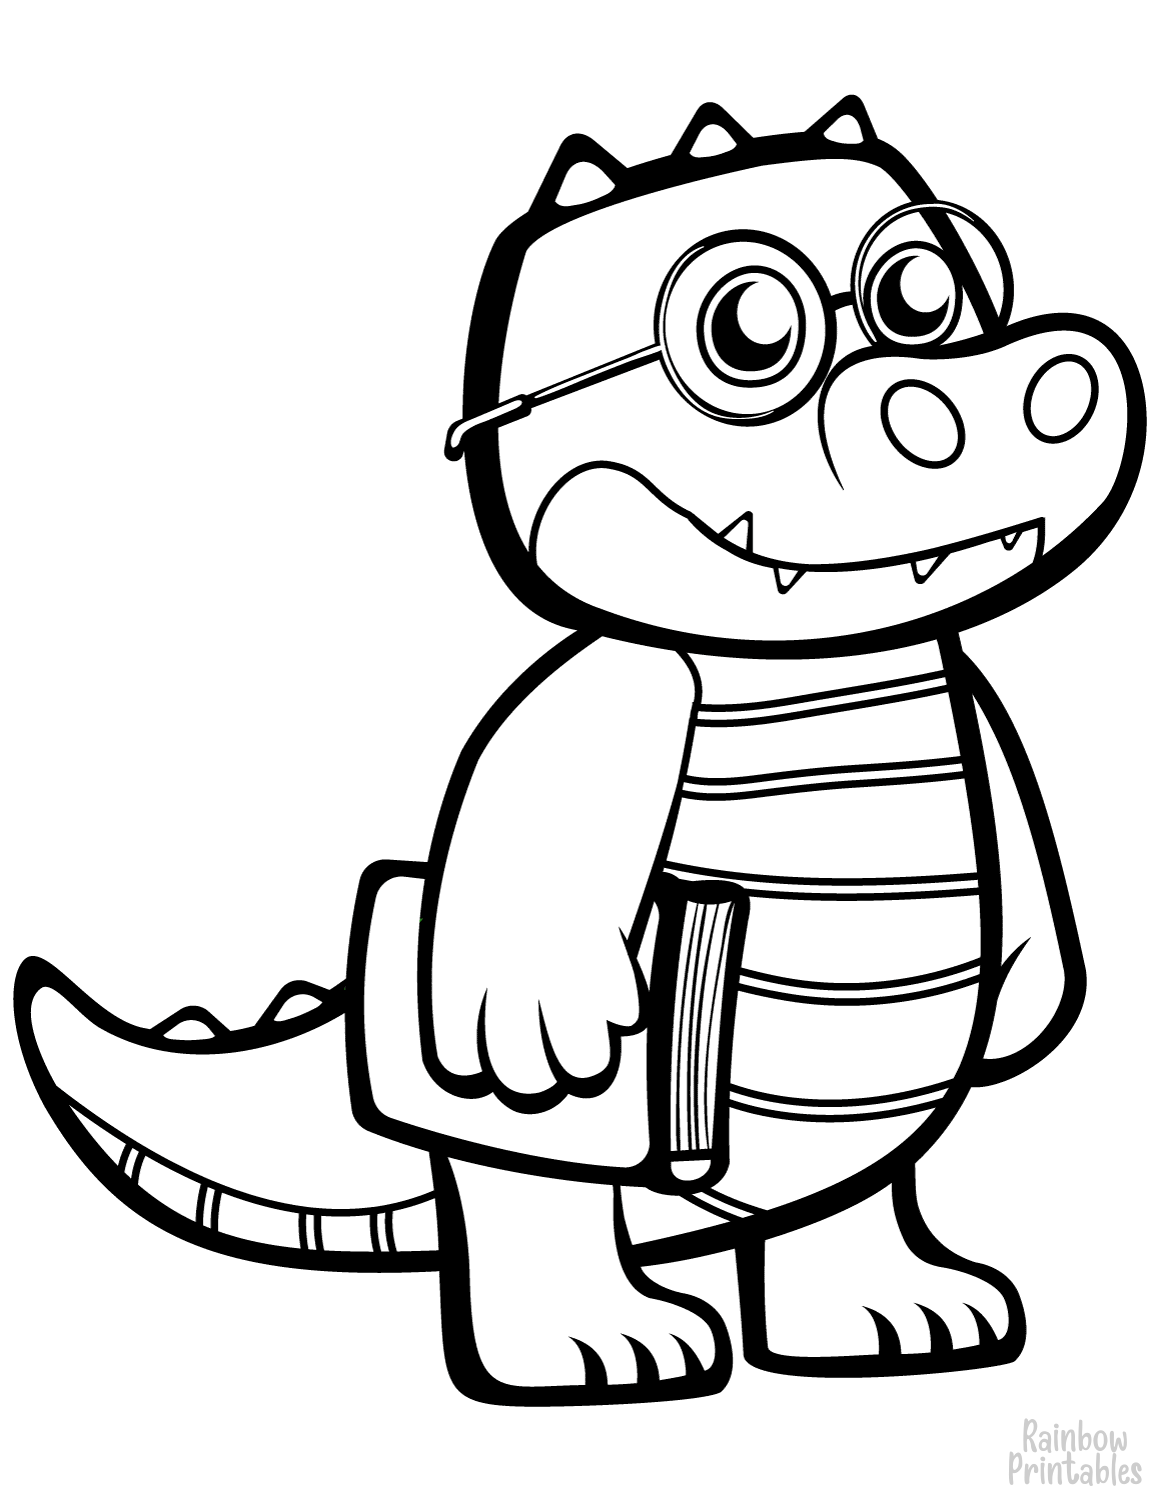 funny crocodile with glasses coloring page